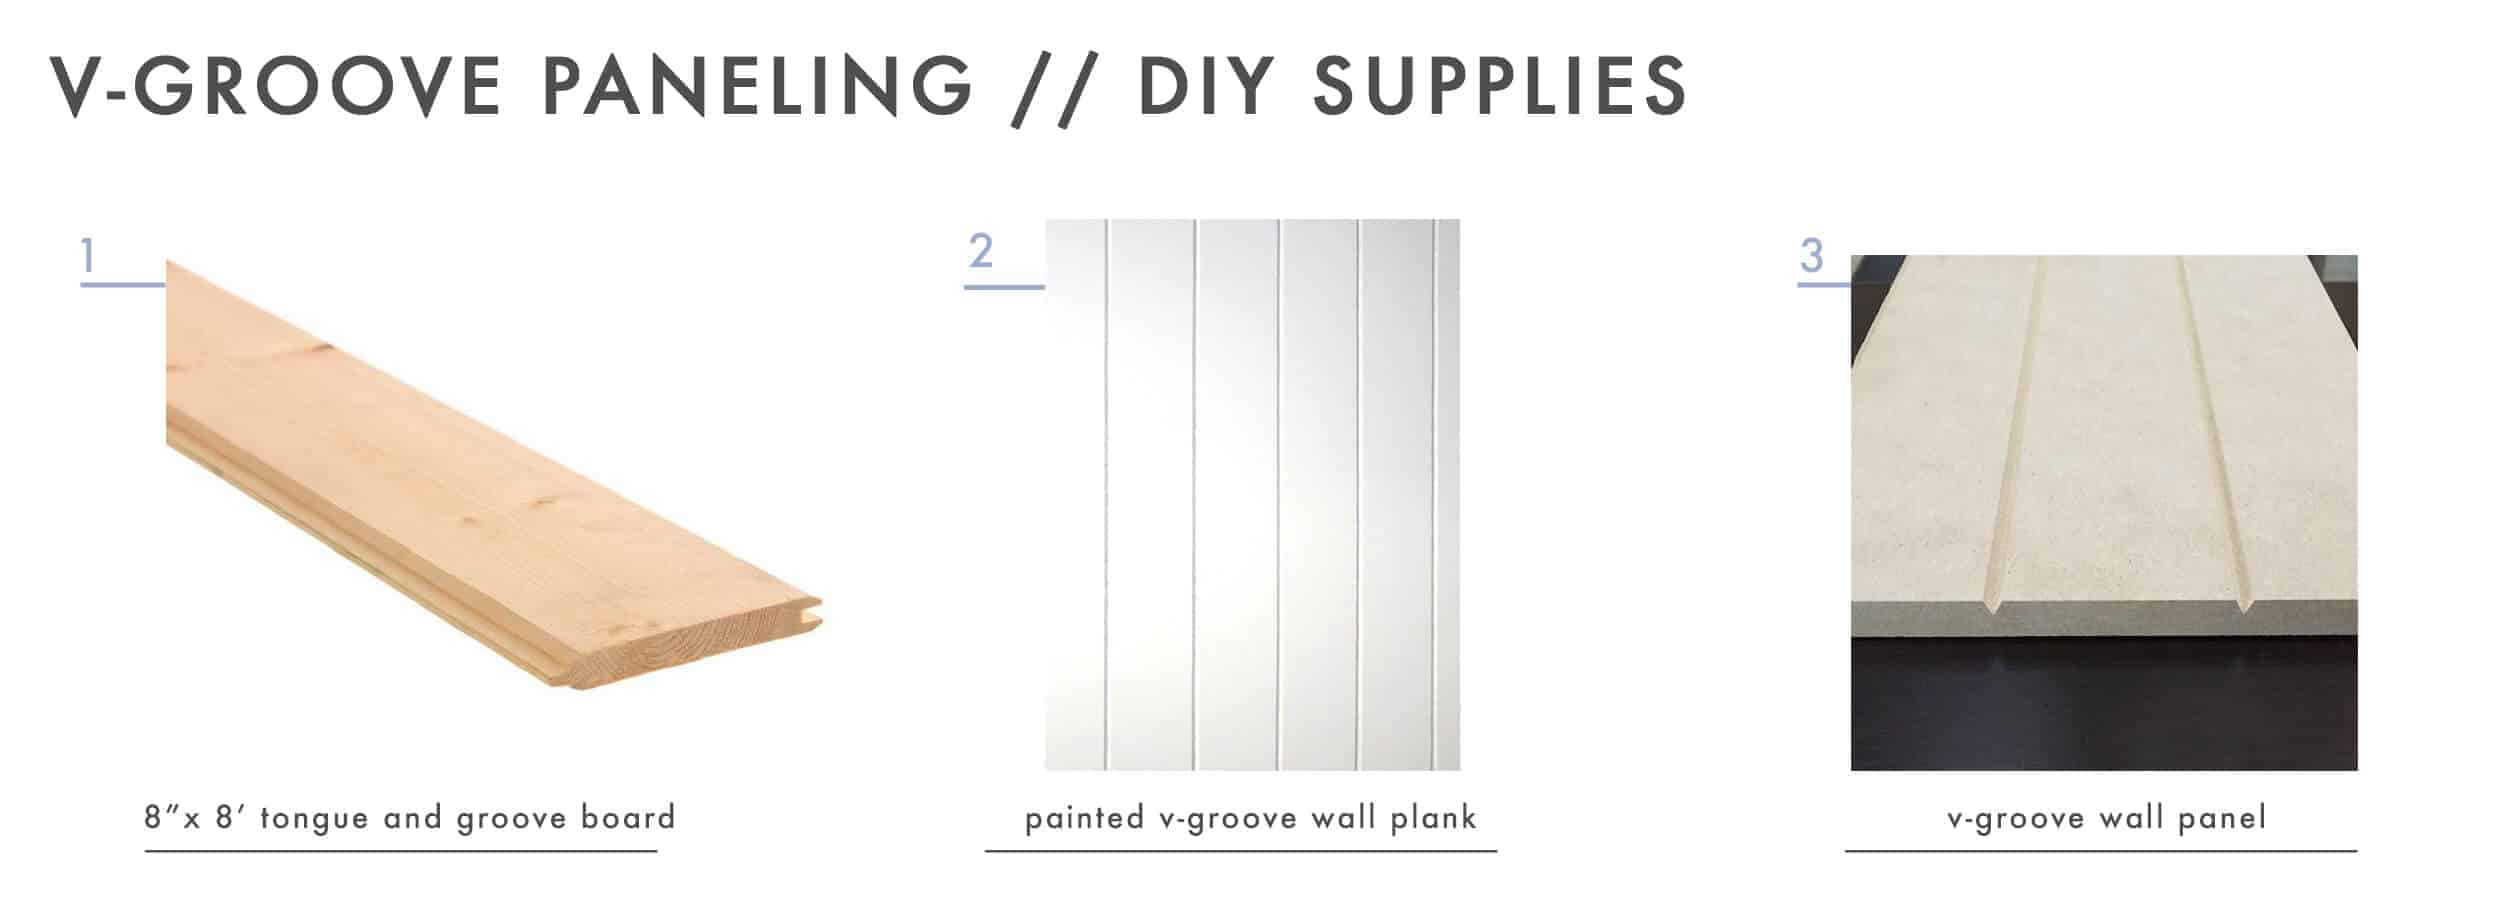 How To Add Character And Charm To Boring Architecture And Houses Ceiling V Groove Paneling Diy Supplies 01